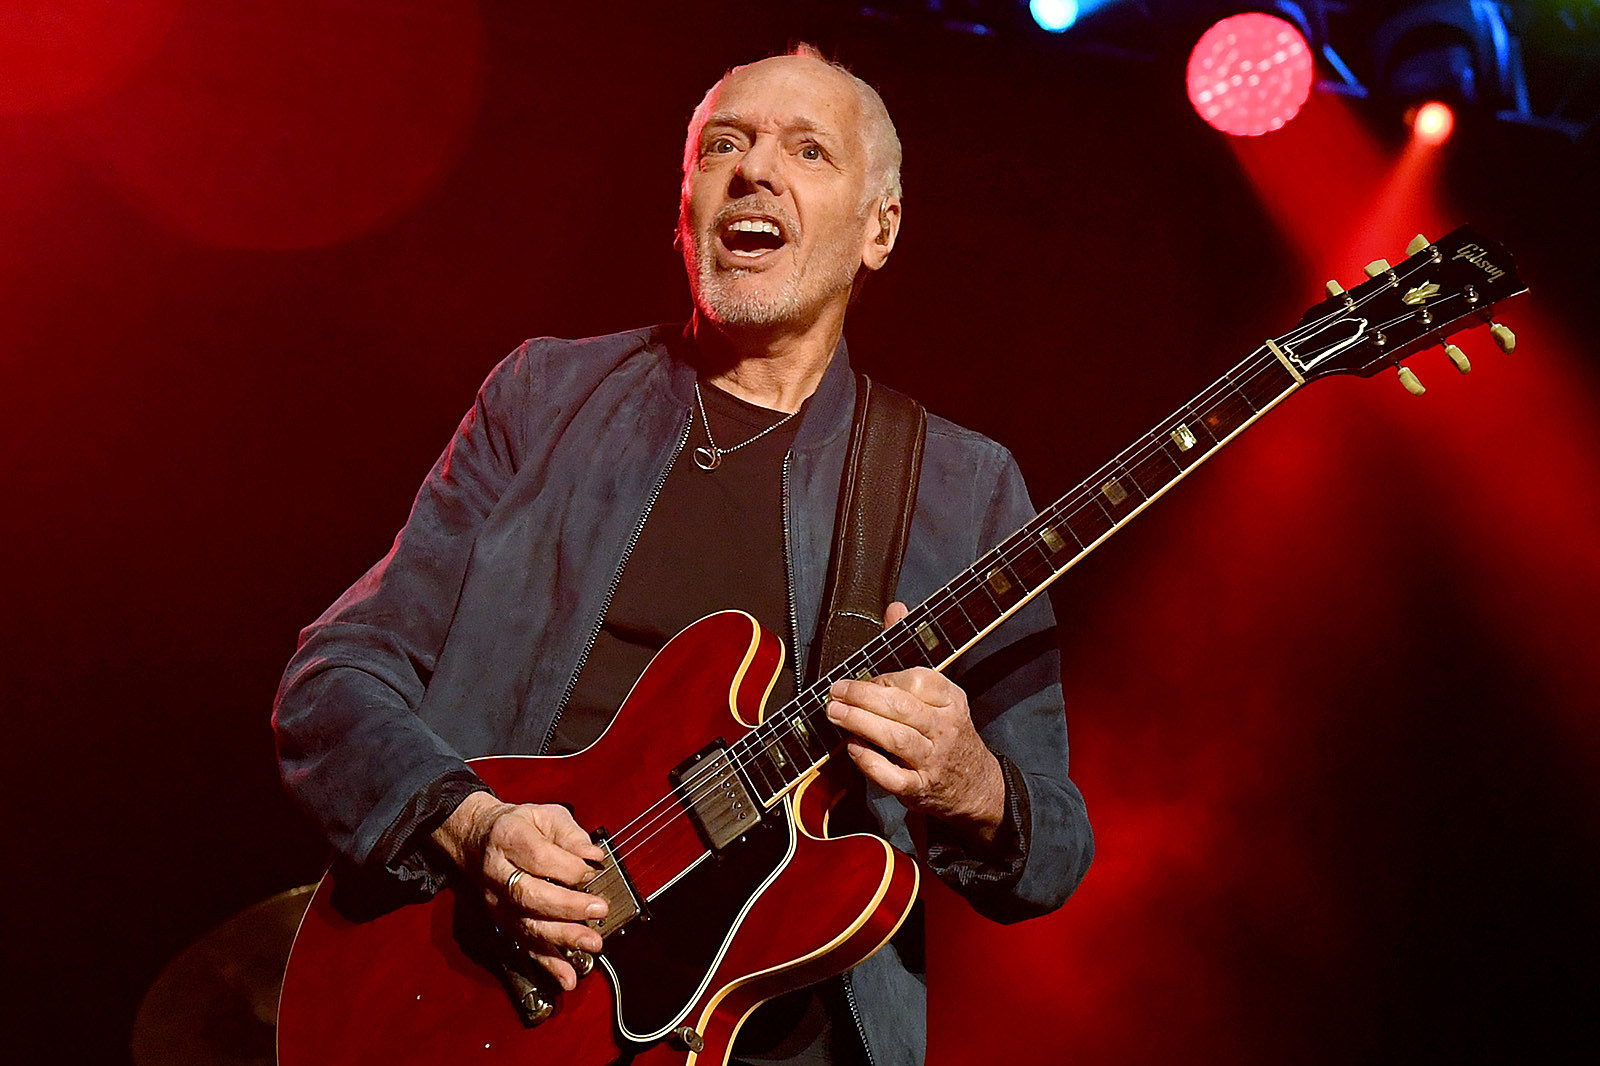 That Time Peter Frampton Wrote Two Hits in One Day